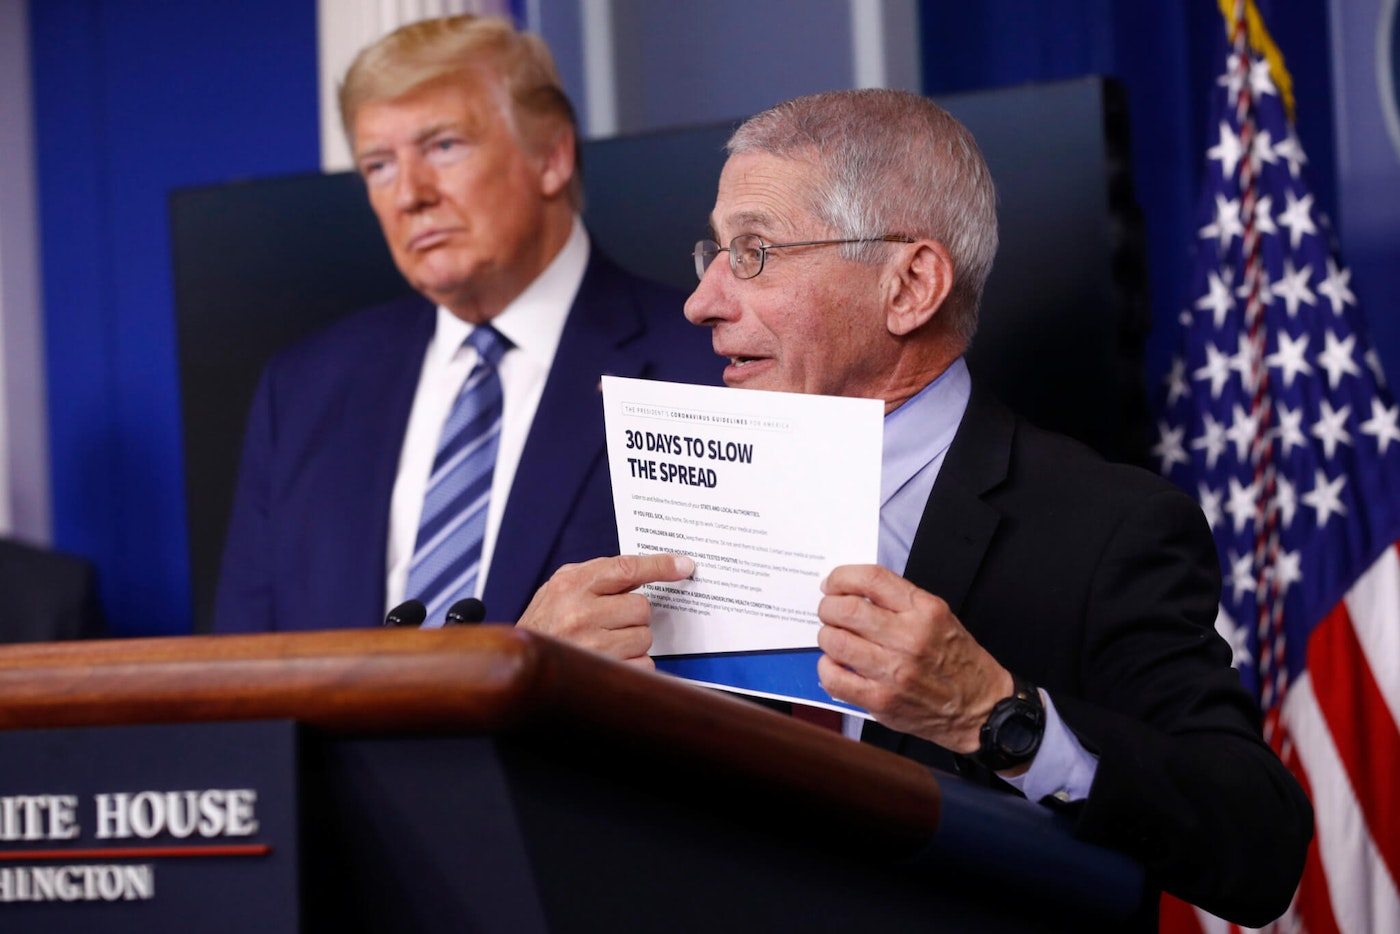 President Donald Trump listens as Director of the National Institute of Allergy and Infectious Diseases Dr. Anthony Fauci speaks. (AP Photo/Patrick Semansky)